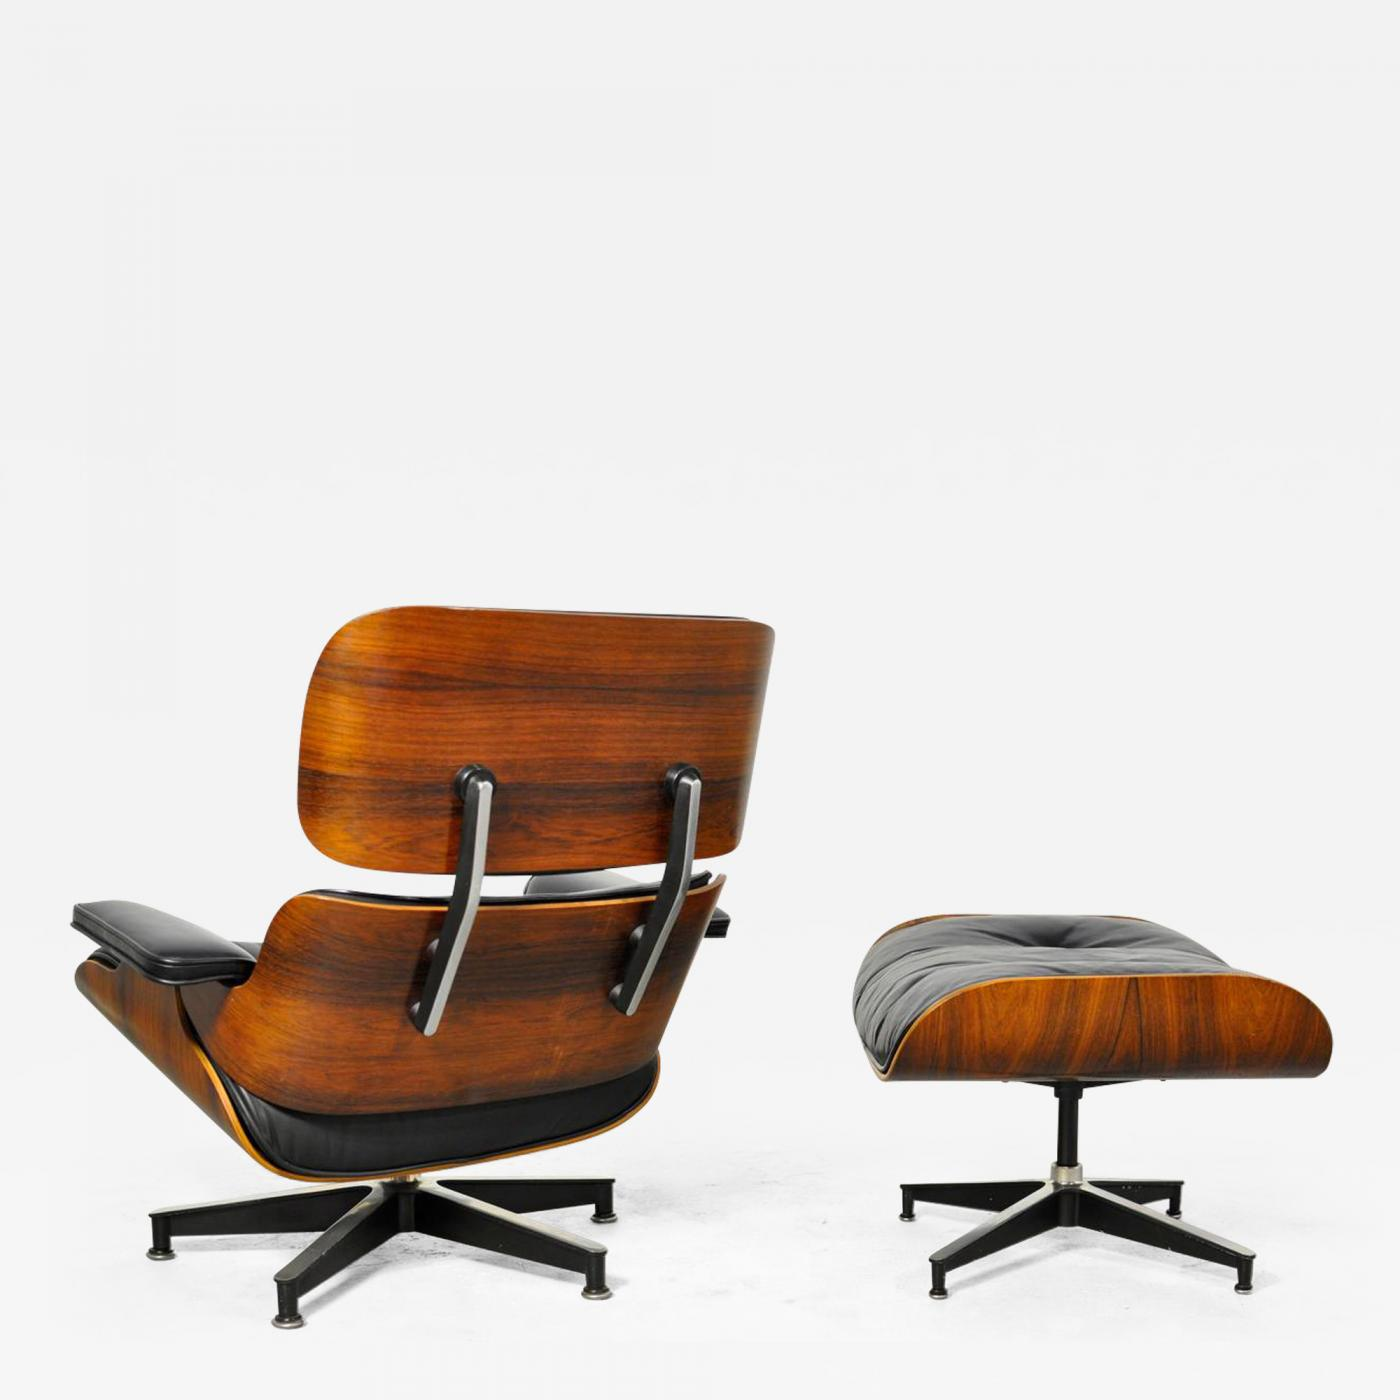 Charles Ray Eames Vintage Rosewood Lounge Chair And Ottoman By Charles Eames